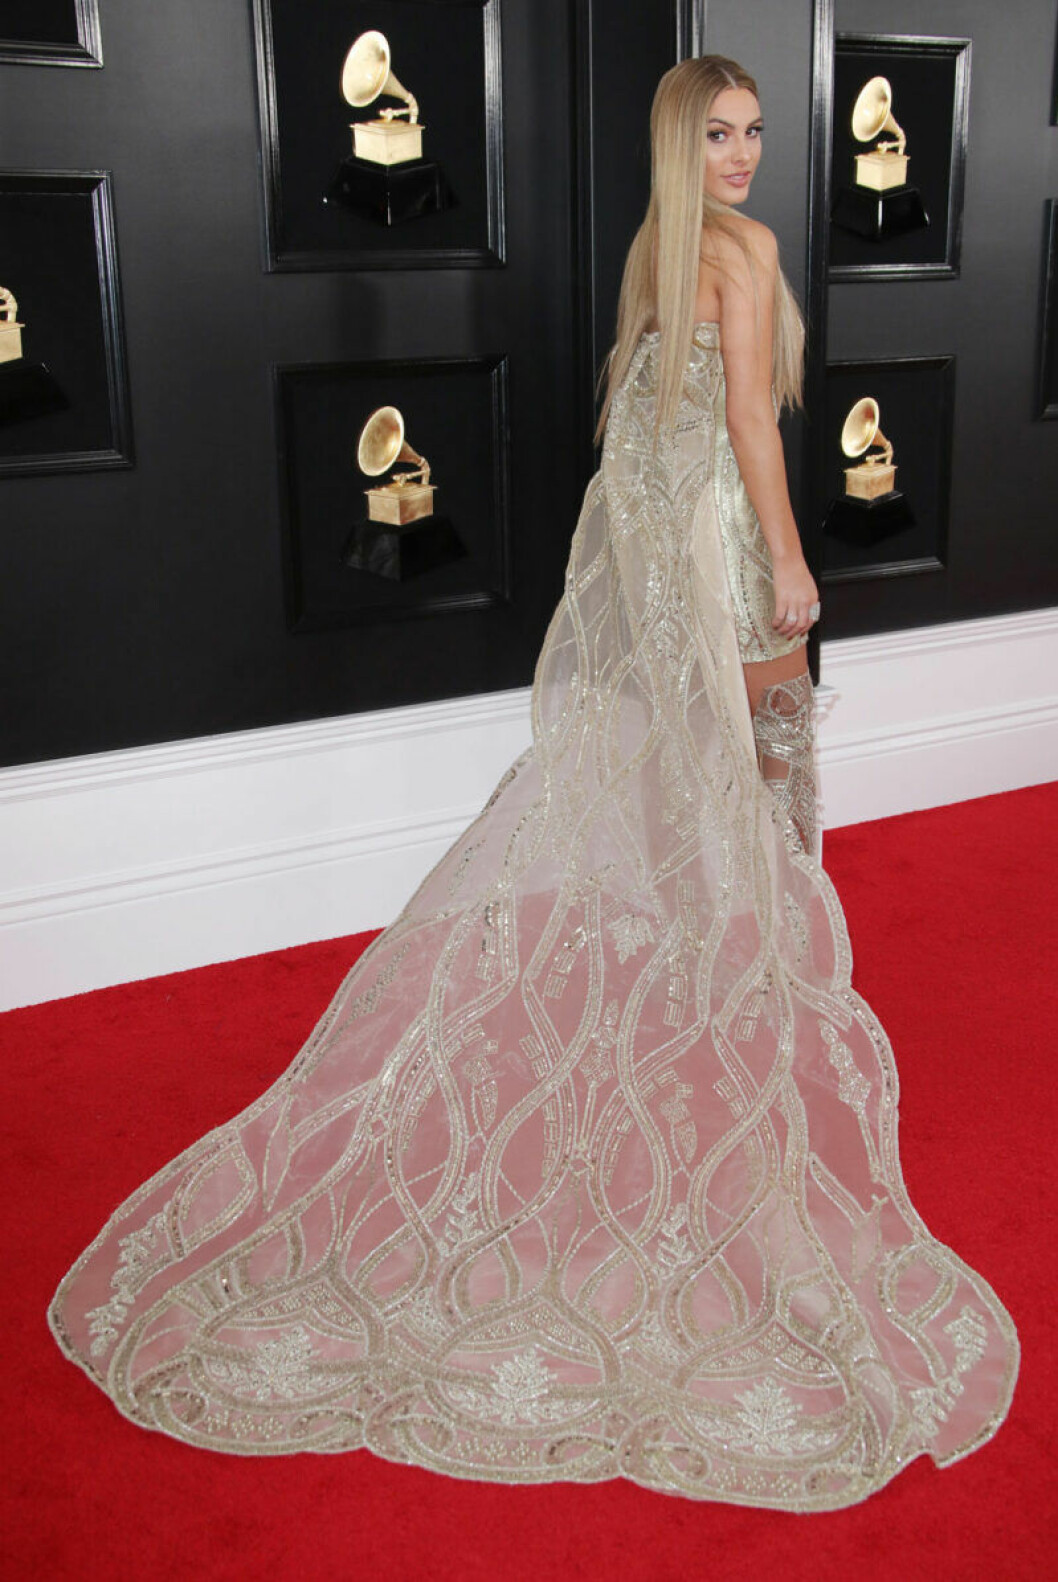 Lele Pons på Grammy Awards 2019